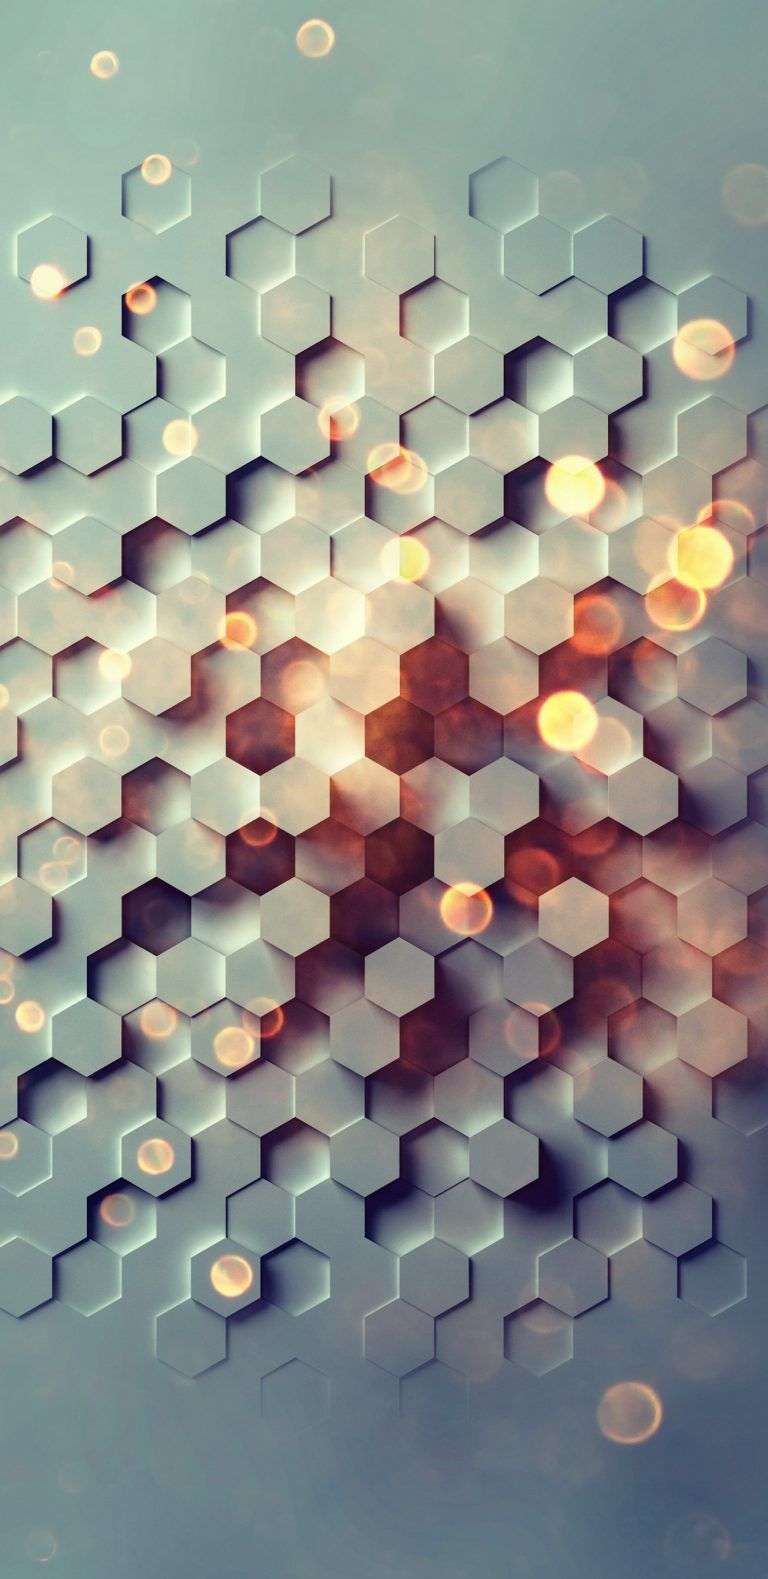 3d Hexagon Background For Samsung Galaxy Note 8 Wallpaper Hd Wallpapers Wallpapers Download High Resolution Wallpapers Pretty Wallpaper Iphone Pretty Wallpapers Samsung Wallpaper